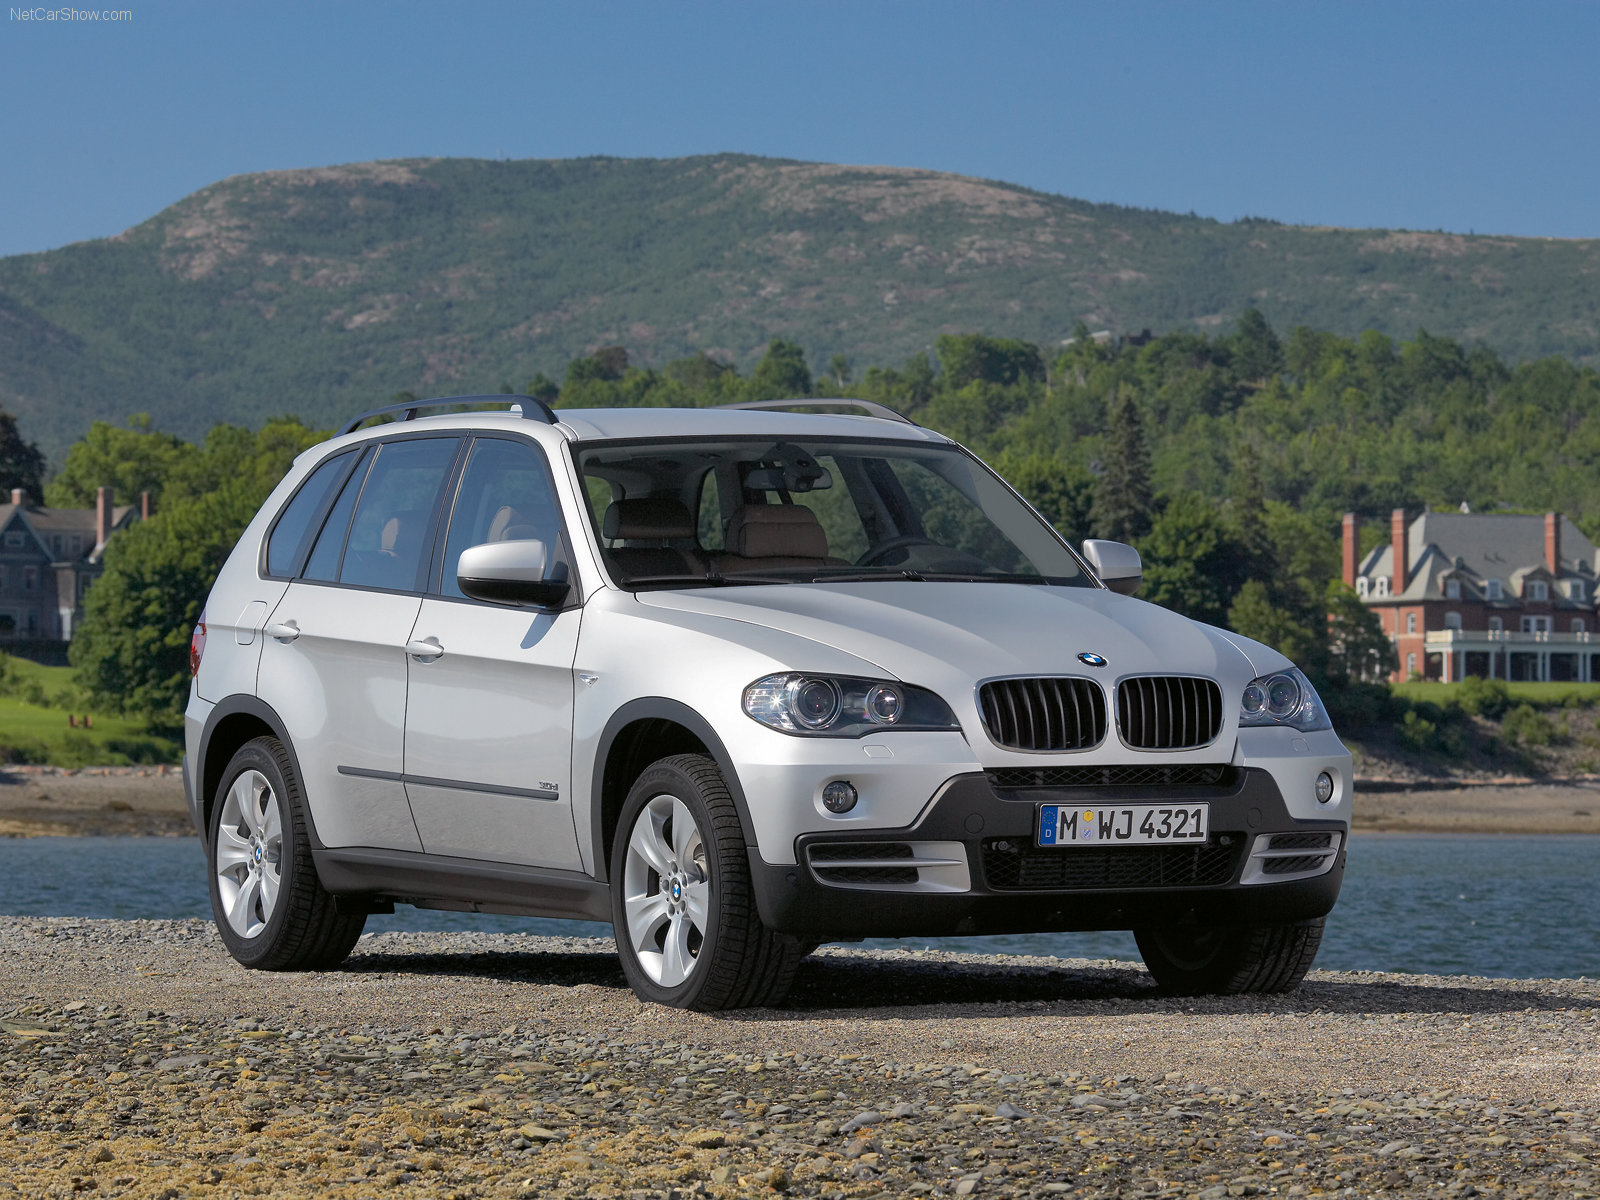 BMW X5 Crossover 2006